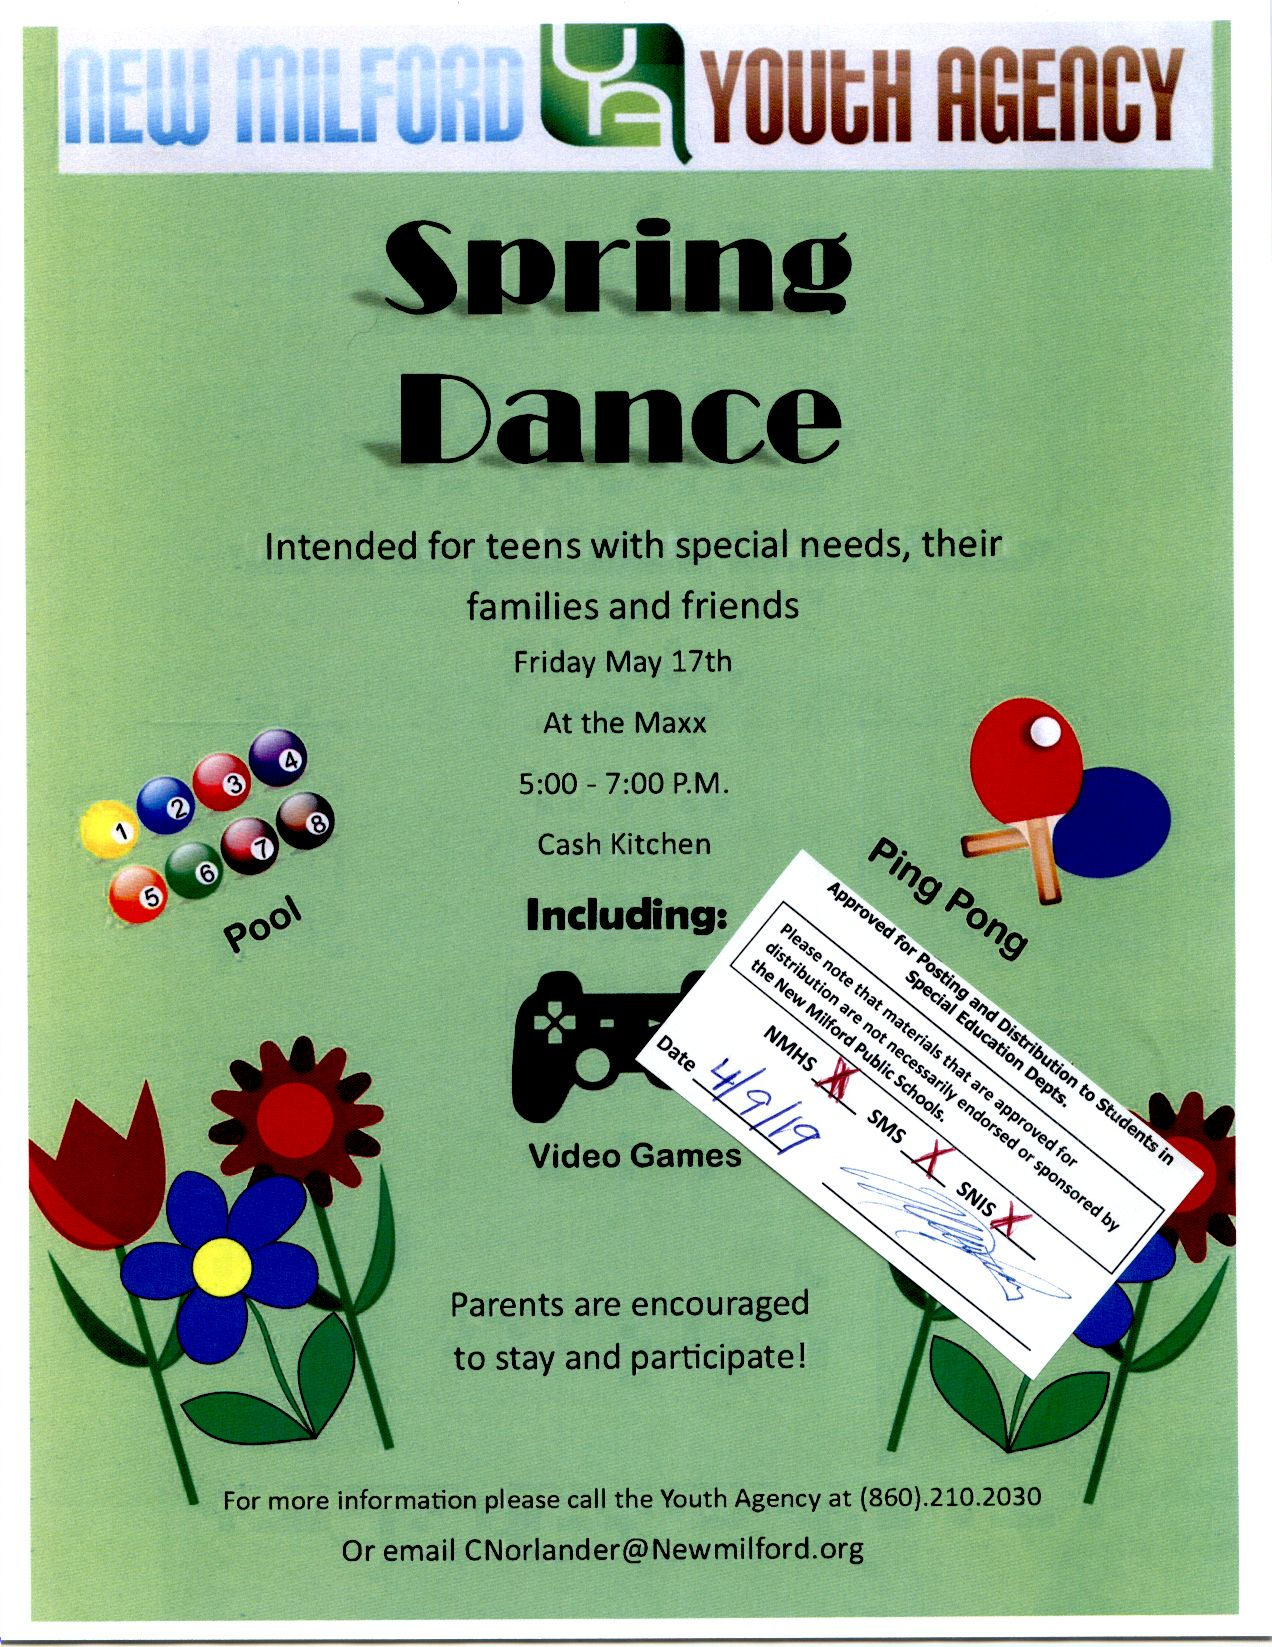 Online Handbook For Special Needs >> New Milford High School Spring Dance For Teens With Special